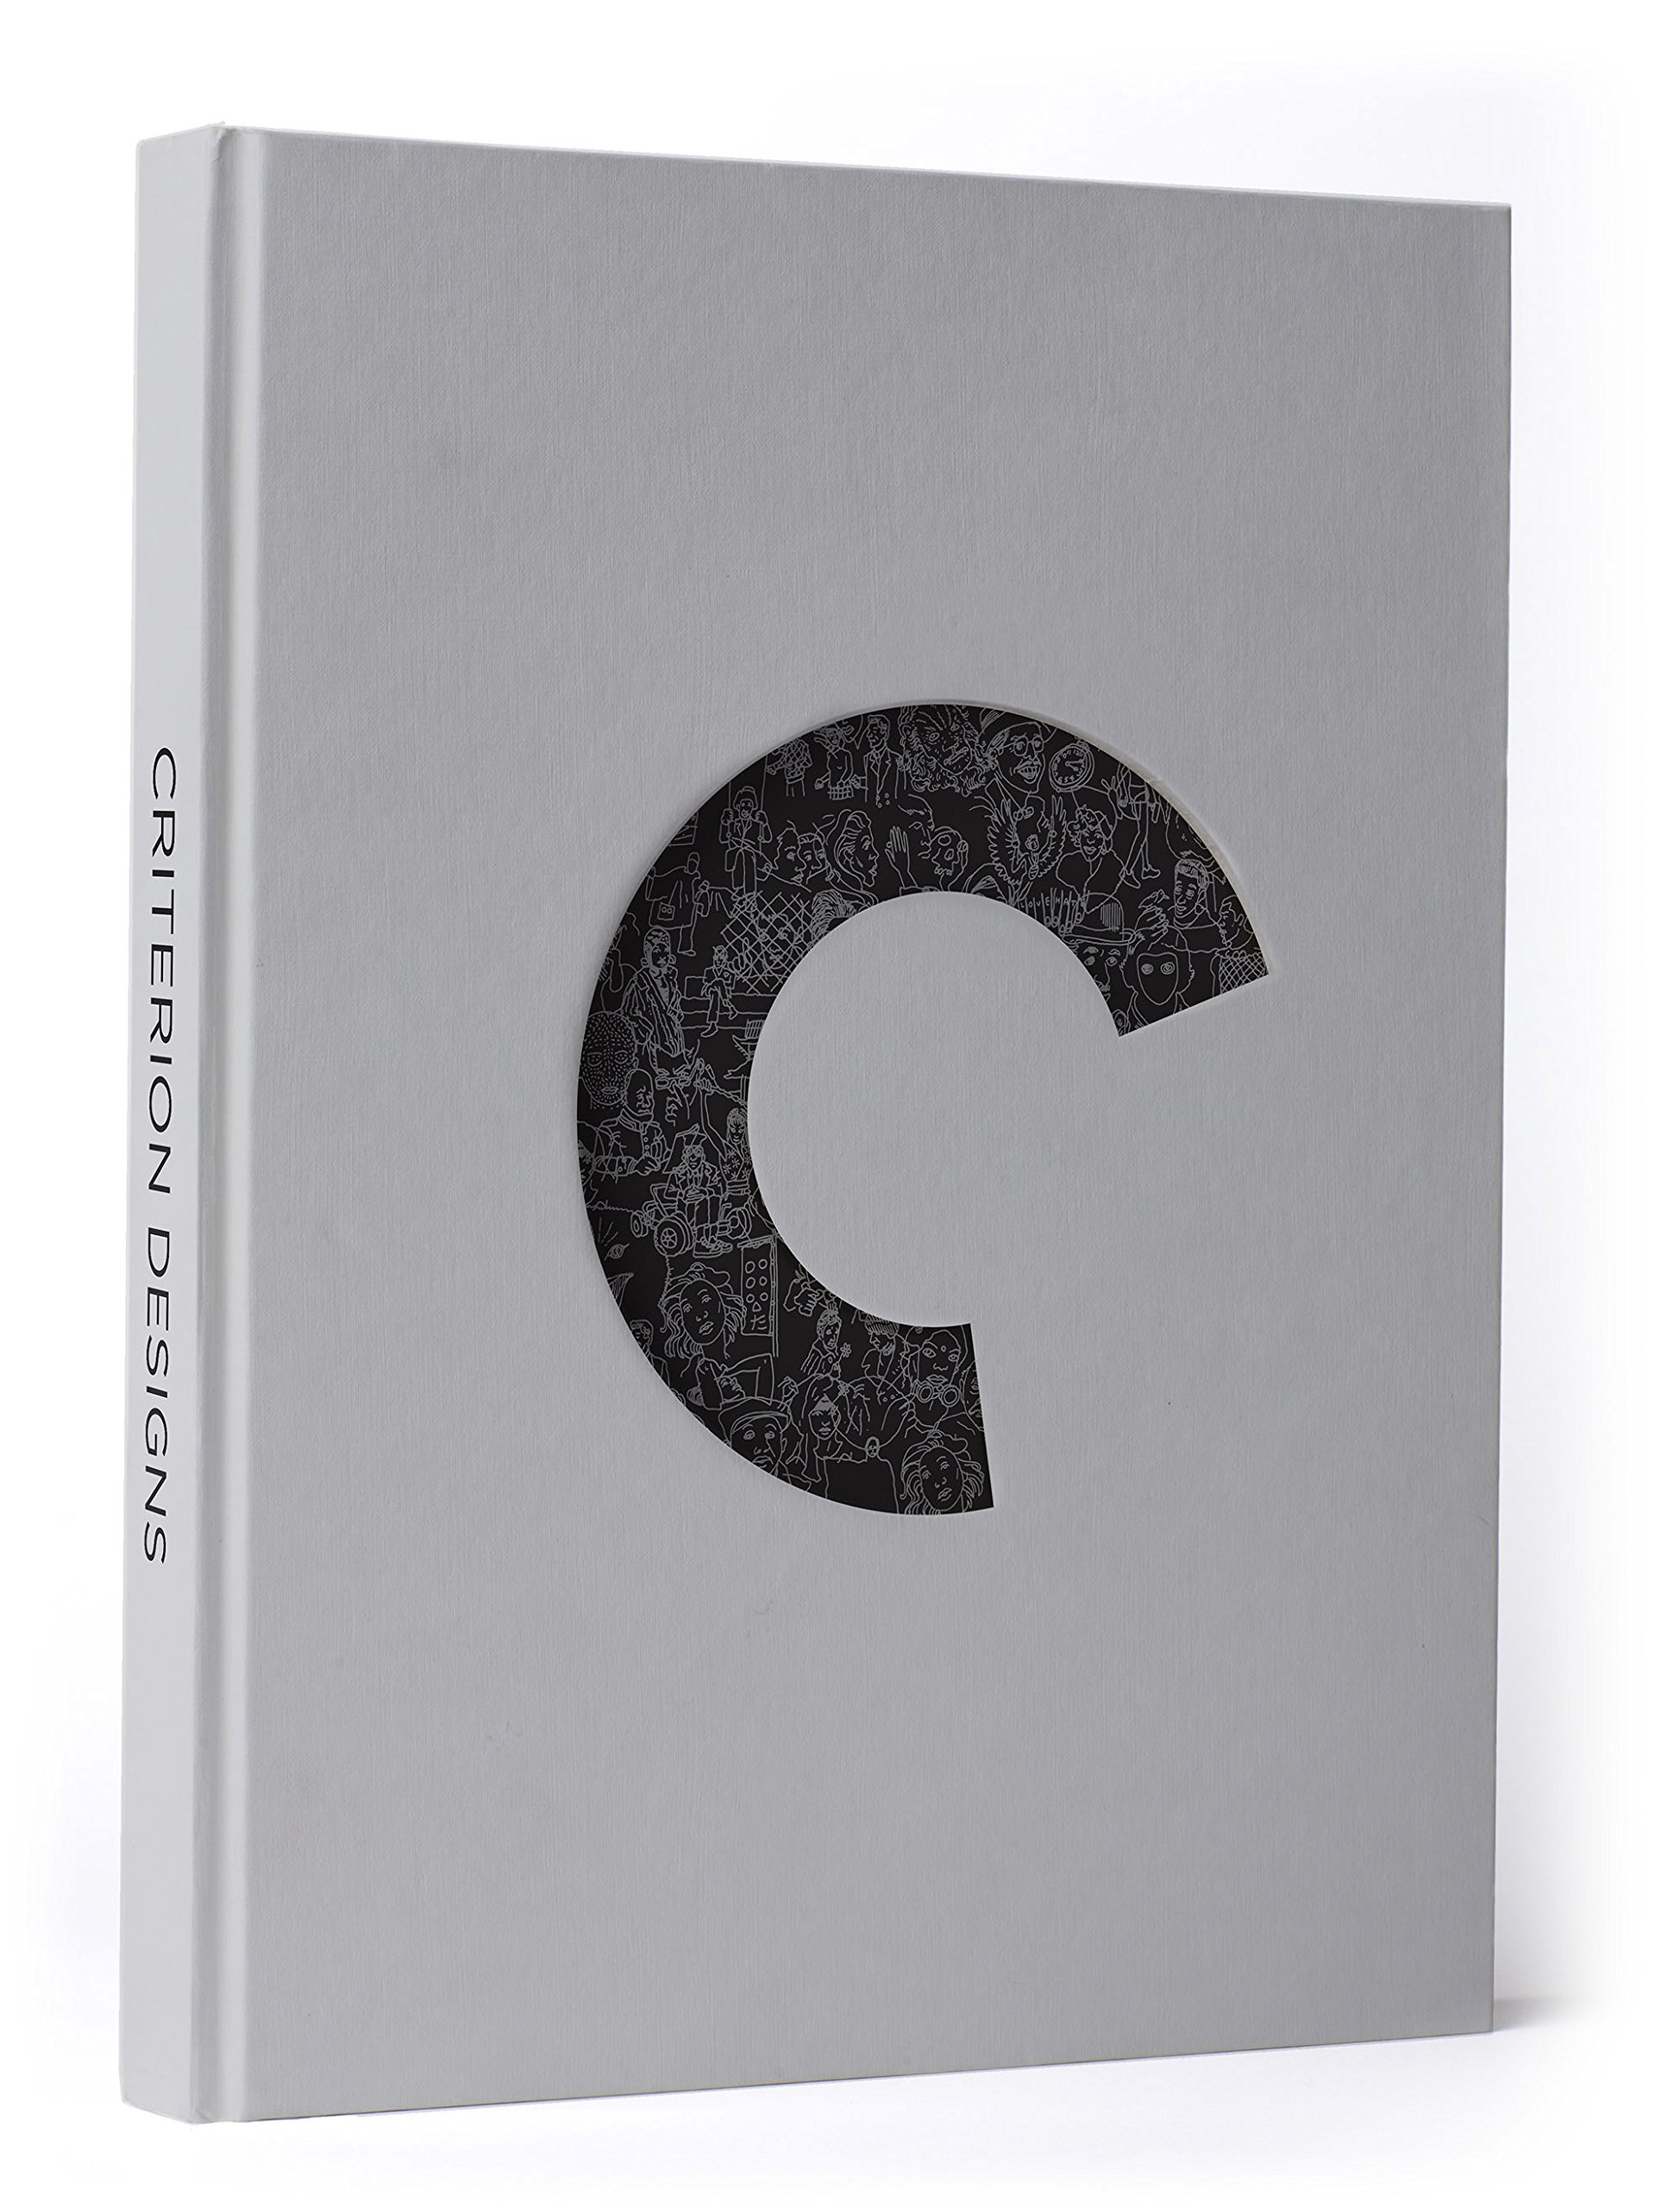 Criterion designs the criterion collection various criterion designs the criterion collection various 0715515134712 amazon books geotapseo Gallery